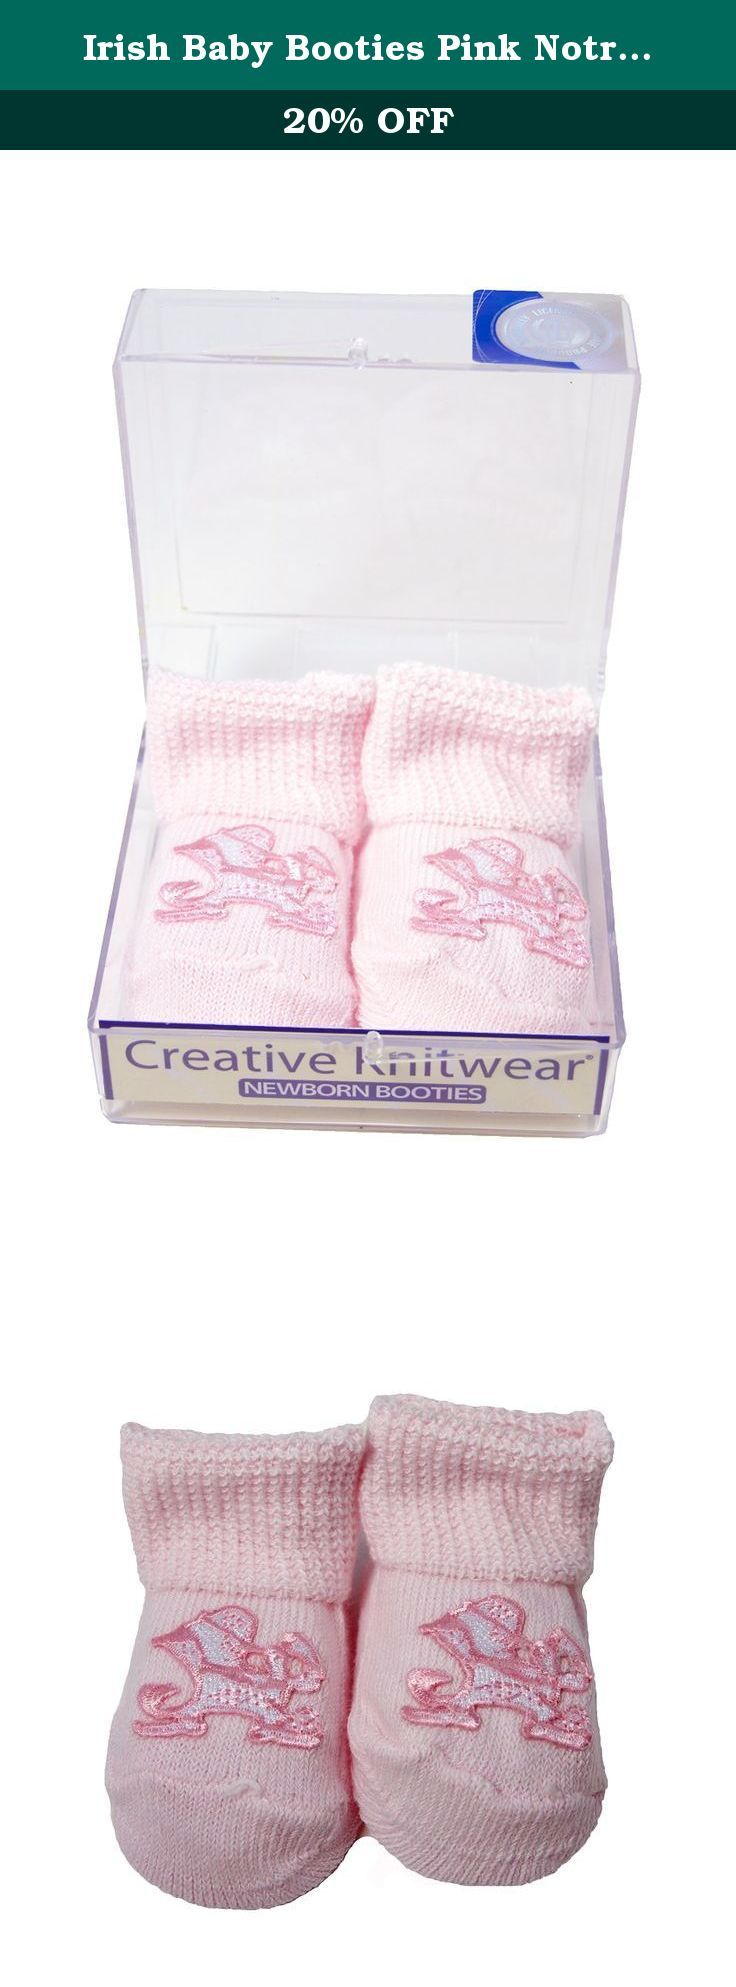 Irish Baby Booties Pink Notre Dame Gift Boxed. Get your wee one an adorable pair of Irish booties to keep their little feet warm as well as for a too cute look! These soft booties come in a variety of colors each with a different Irish symbol! The newborn booties are made from 75% cotton, 20% nylon, & 5% spandex for warmth, a soft touch and for easy machine washing! Keep their tiny toes warm with one or more pairs of these Irish baby booties!.